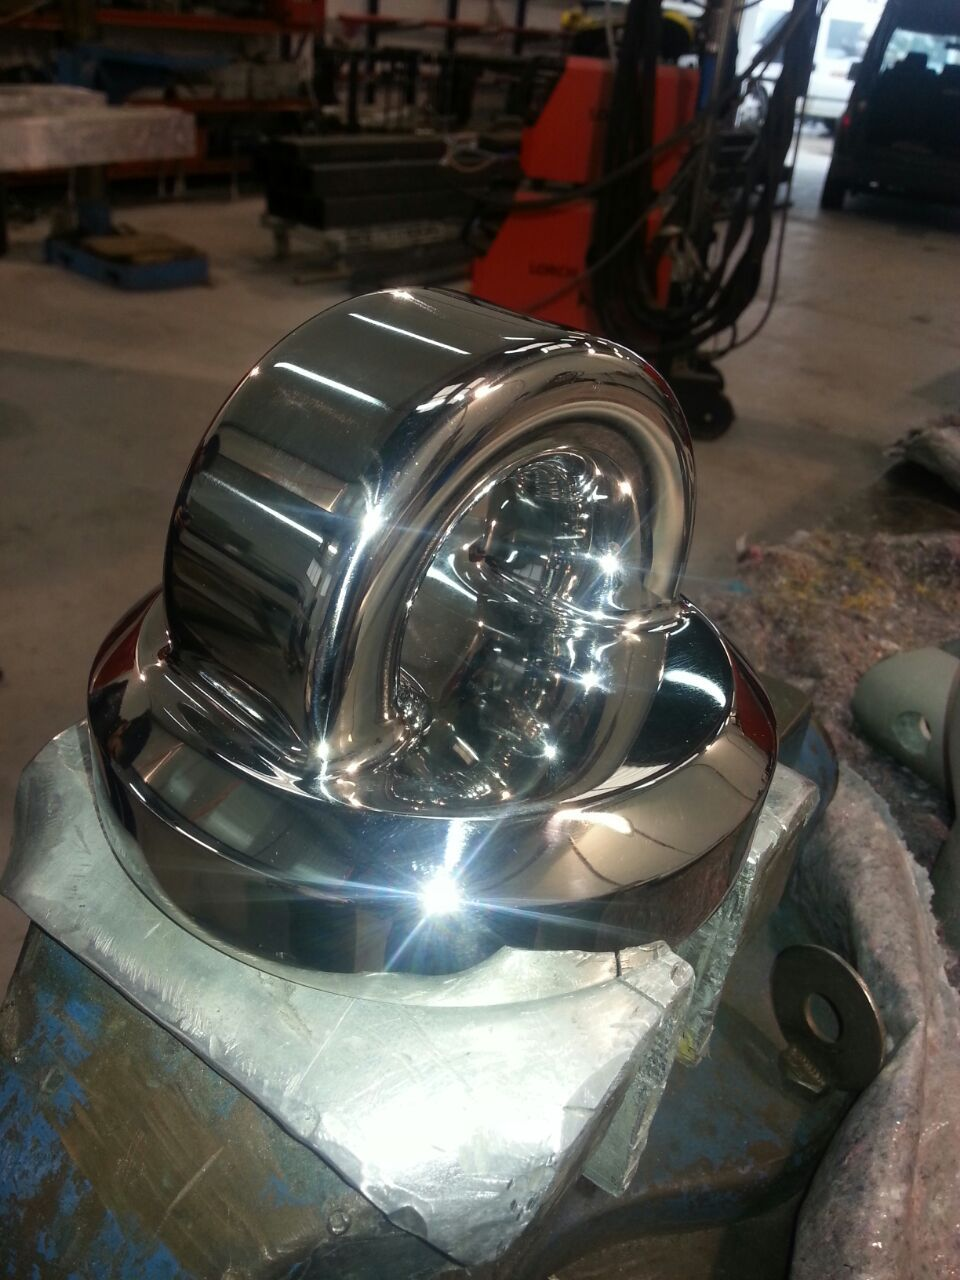 Just look at this beautiful pad eye that @VcMetalwork have fabricated for the #JMVIndustries #sailing #yacht #BlueDiamond.  #Vc are renowned for their expertise in metal fabrication as well as their amazing #polishing and finishing skills. www.vcmetalwork.com #metalfabrication for #superyachts  https://www.facebook.com/vcmetalwork/posts/921506797860983